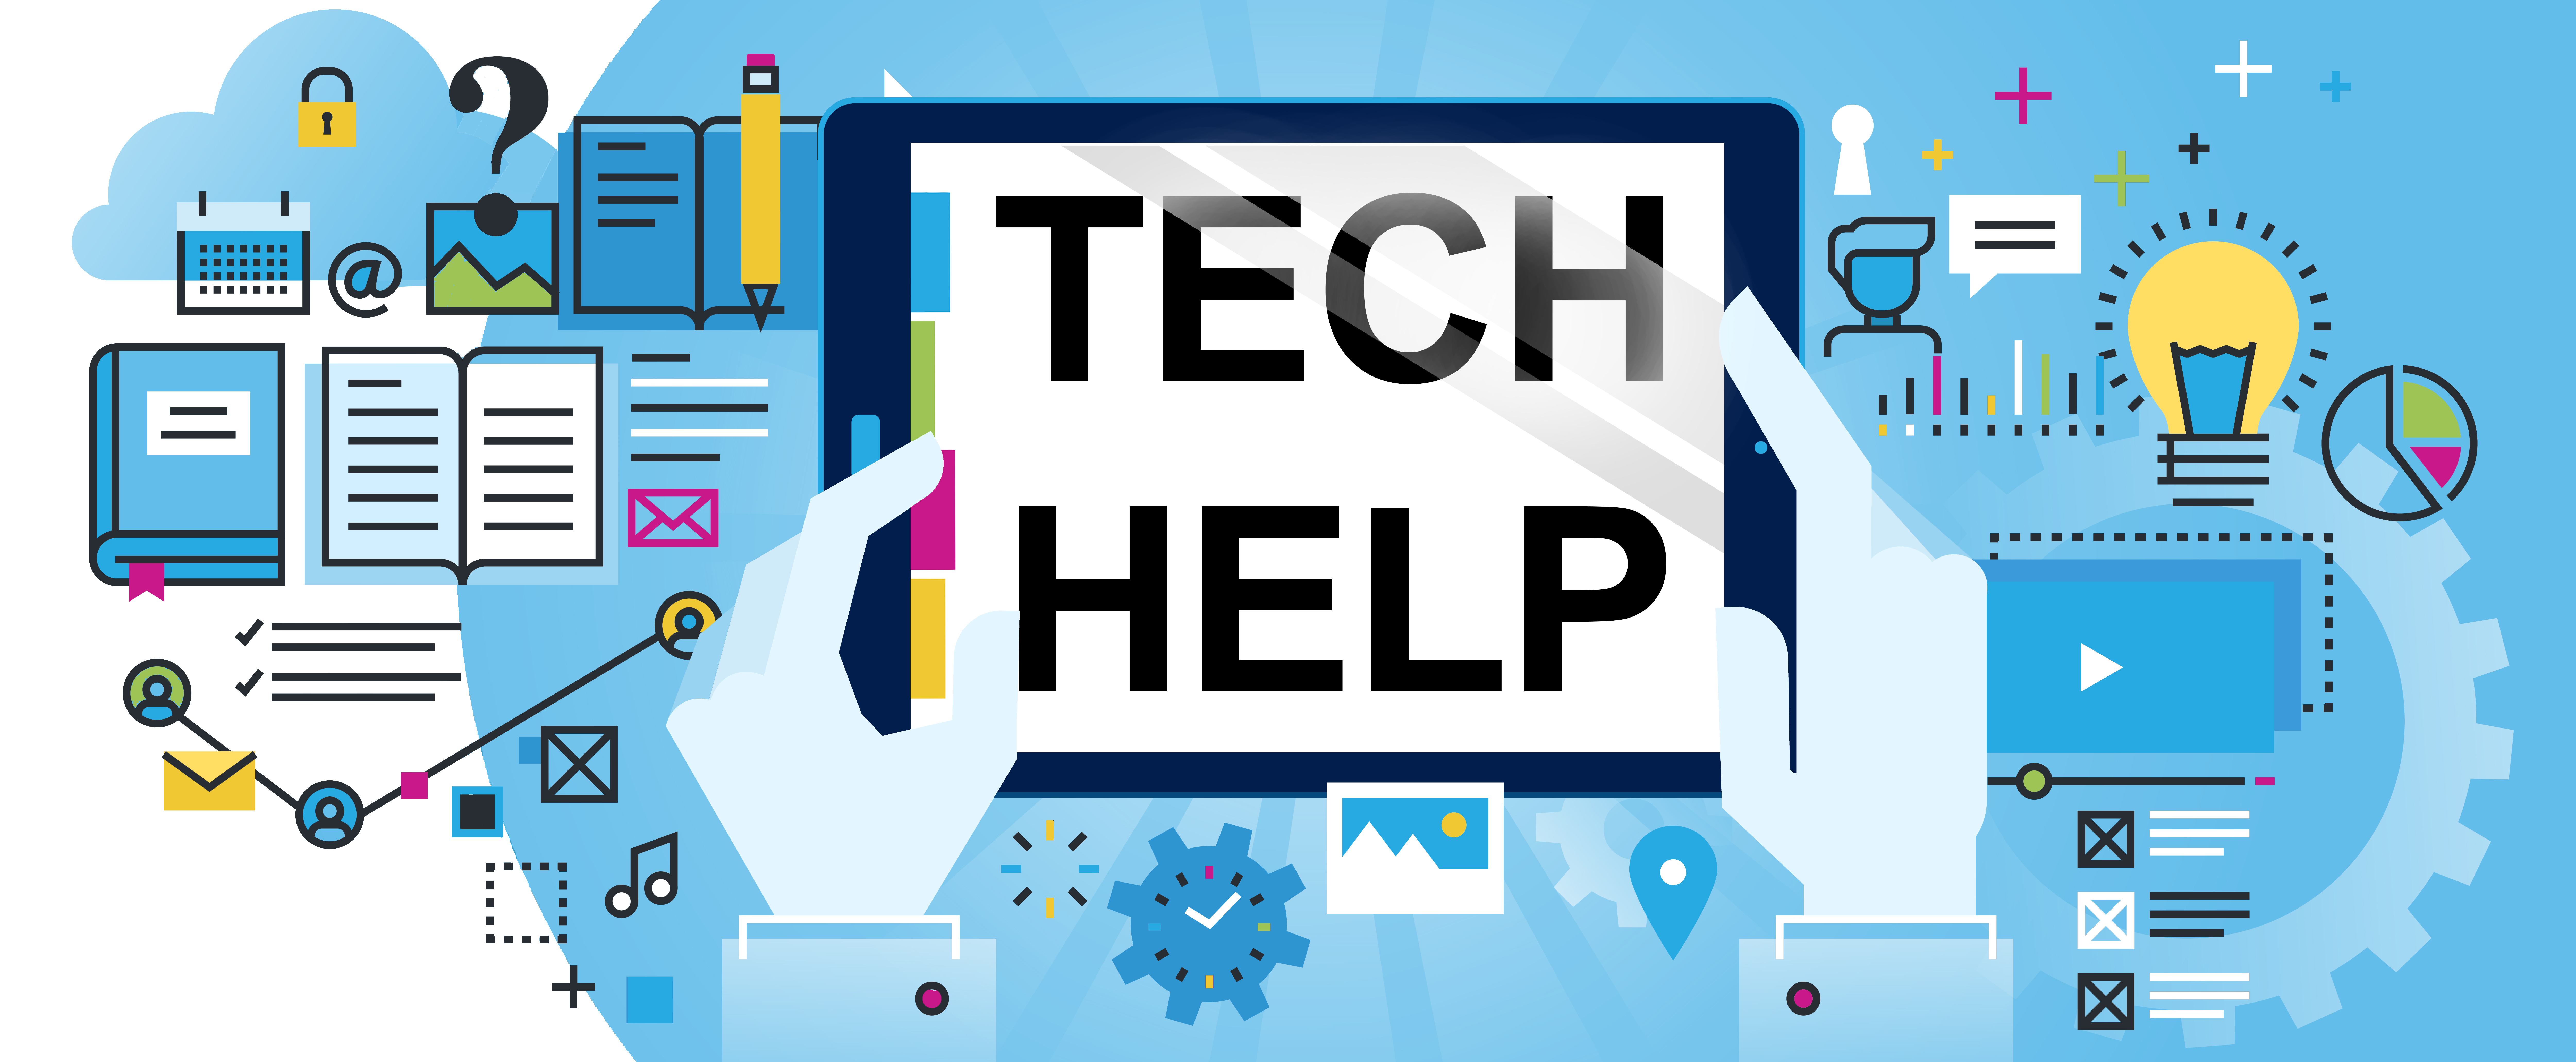 Tech Help: Free One-on-One Technology Help